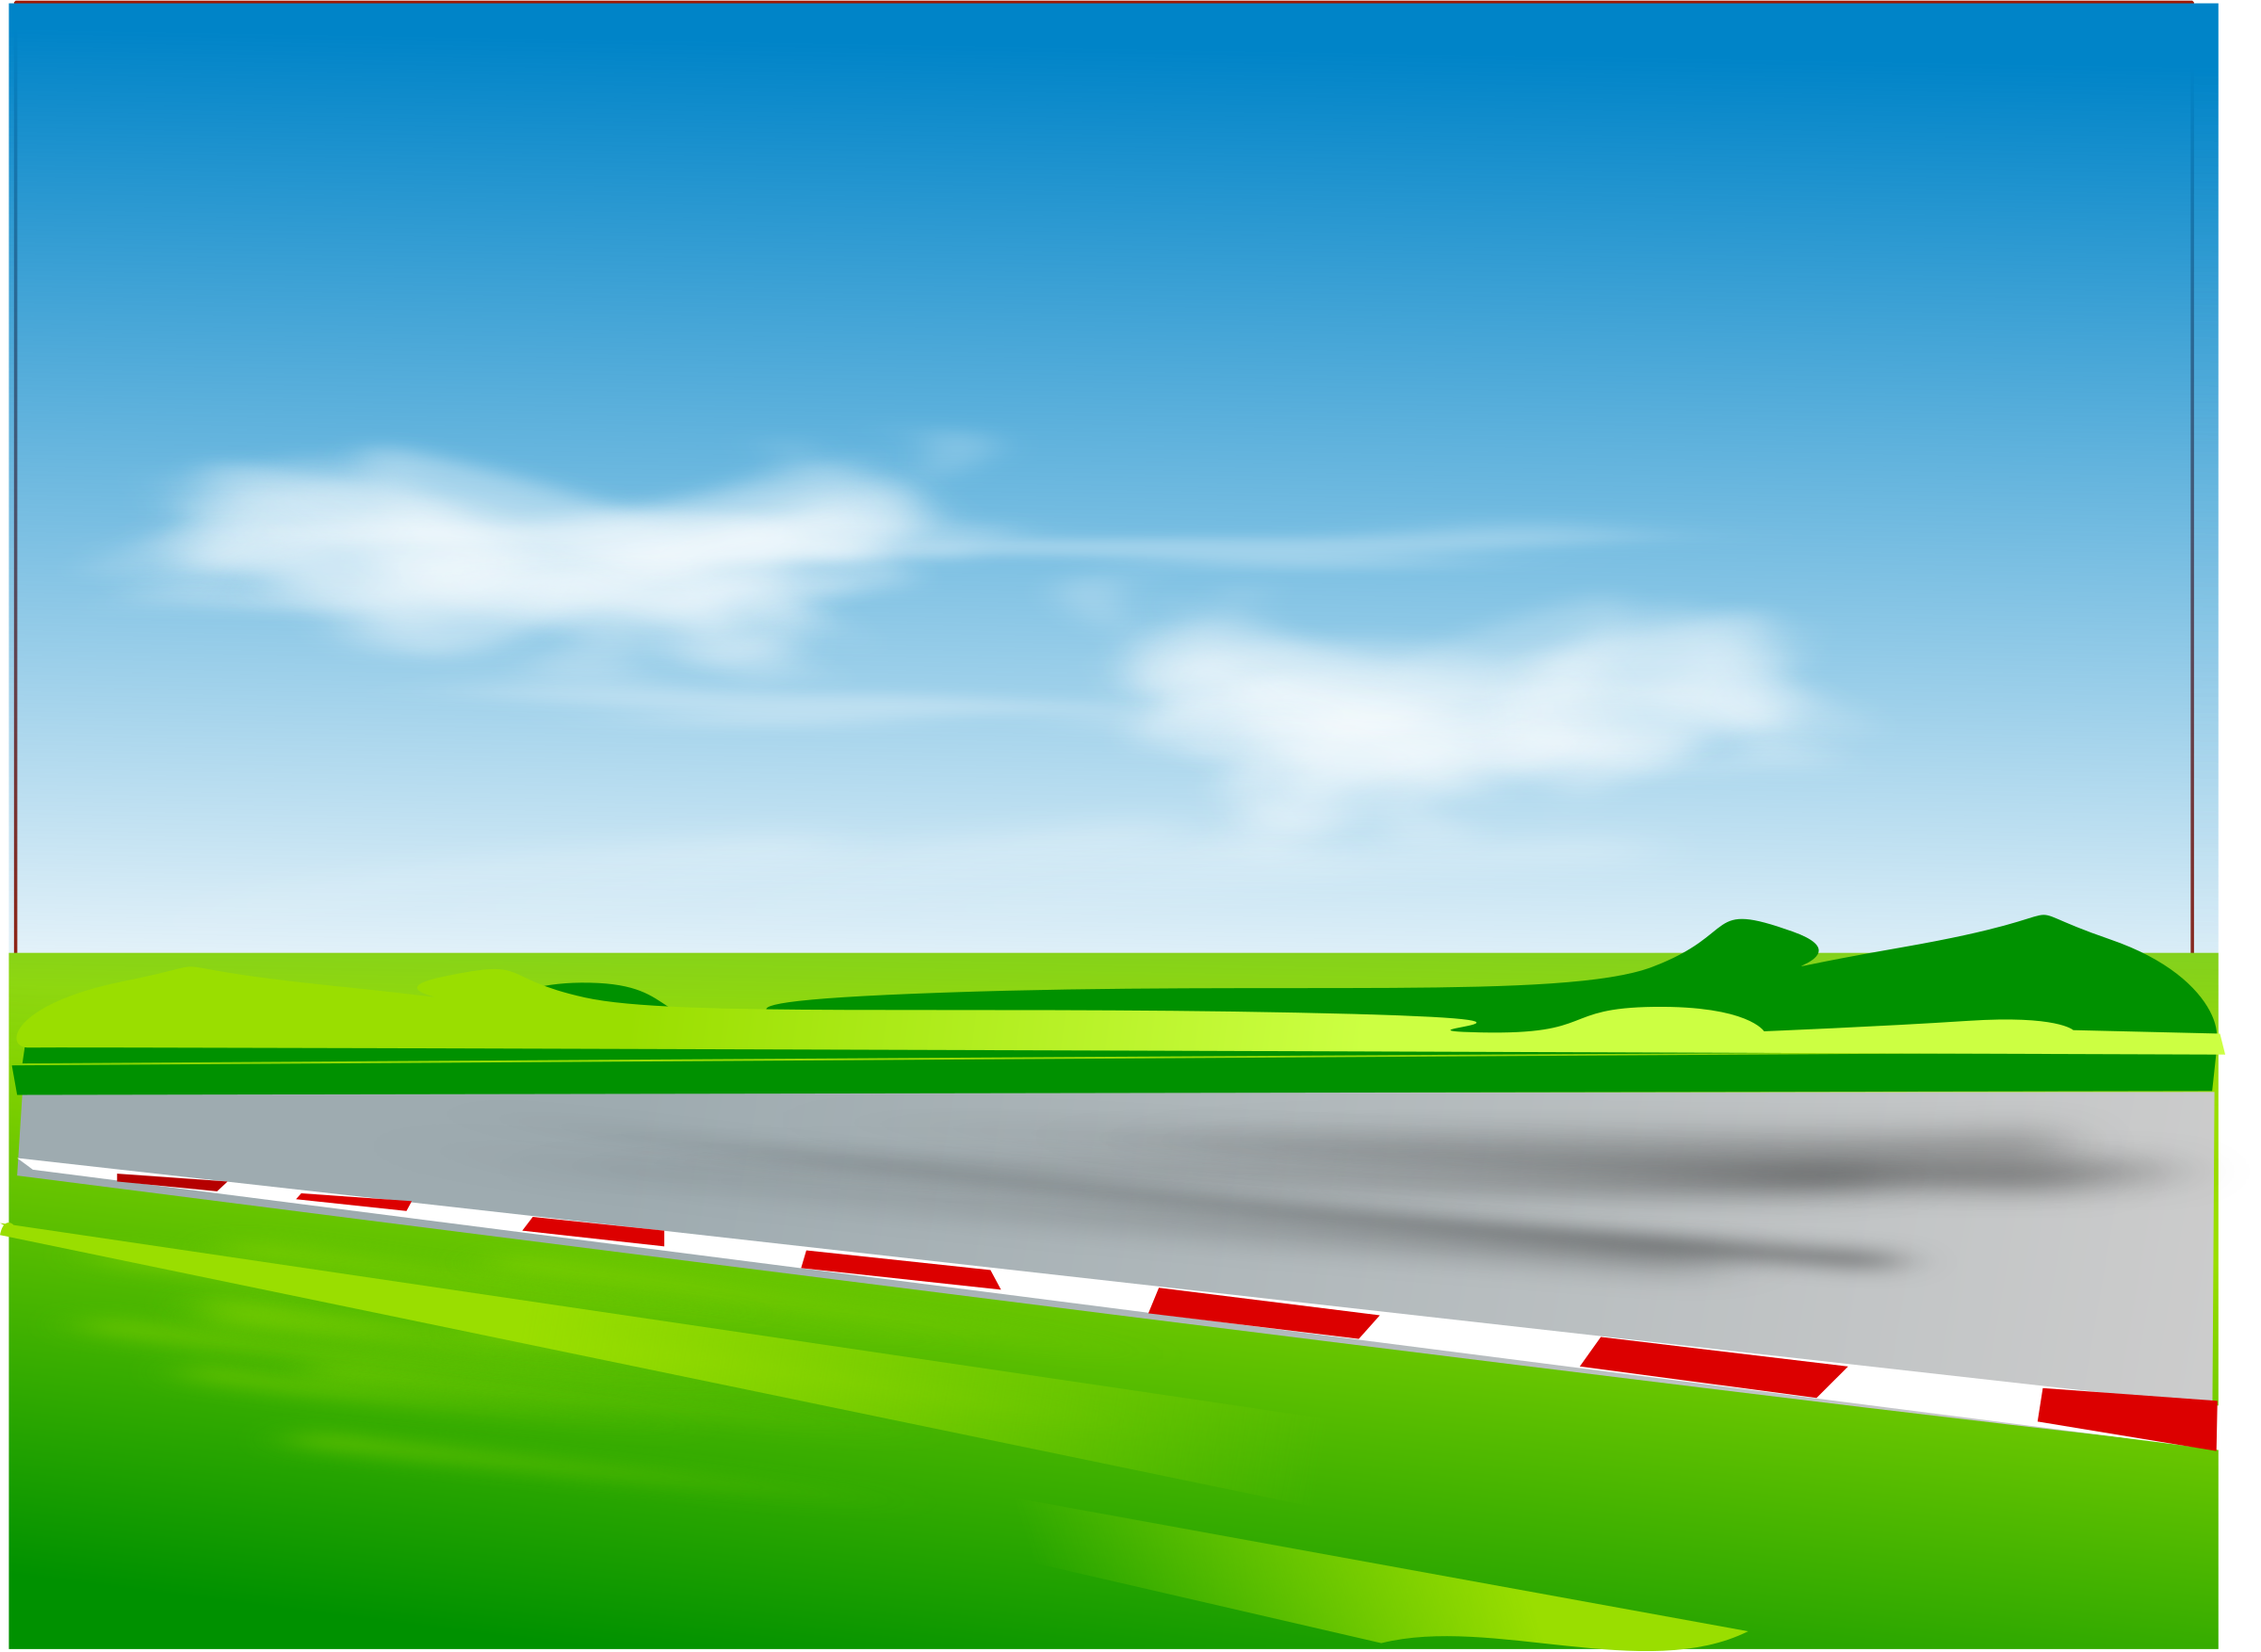 Race Track Clipart - Clipart Kid